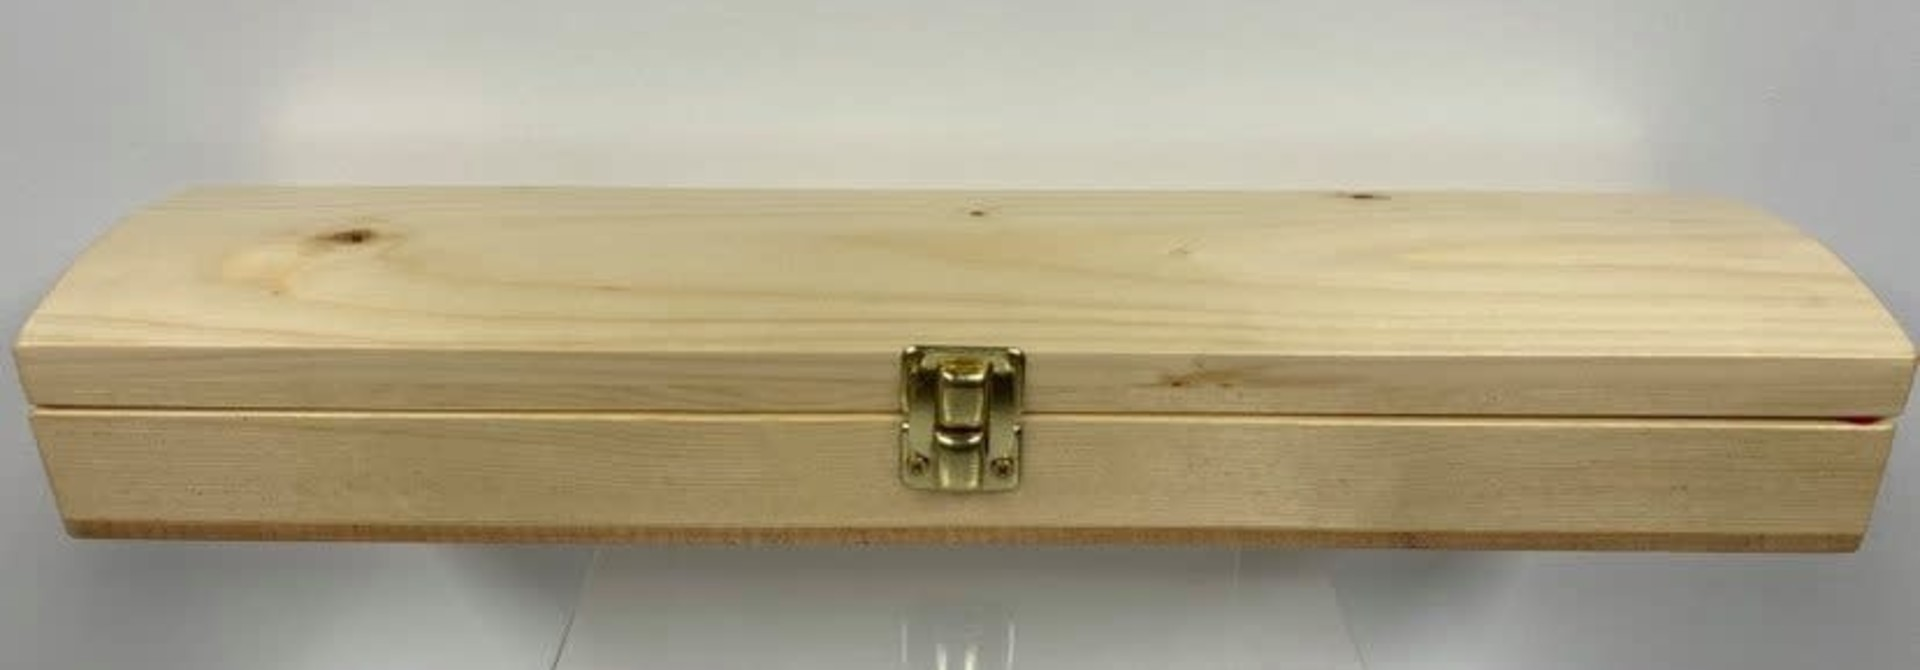 Hand Crafted Feather Box - Pine